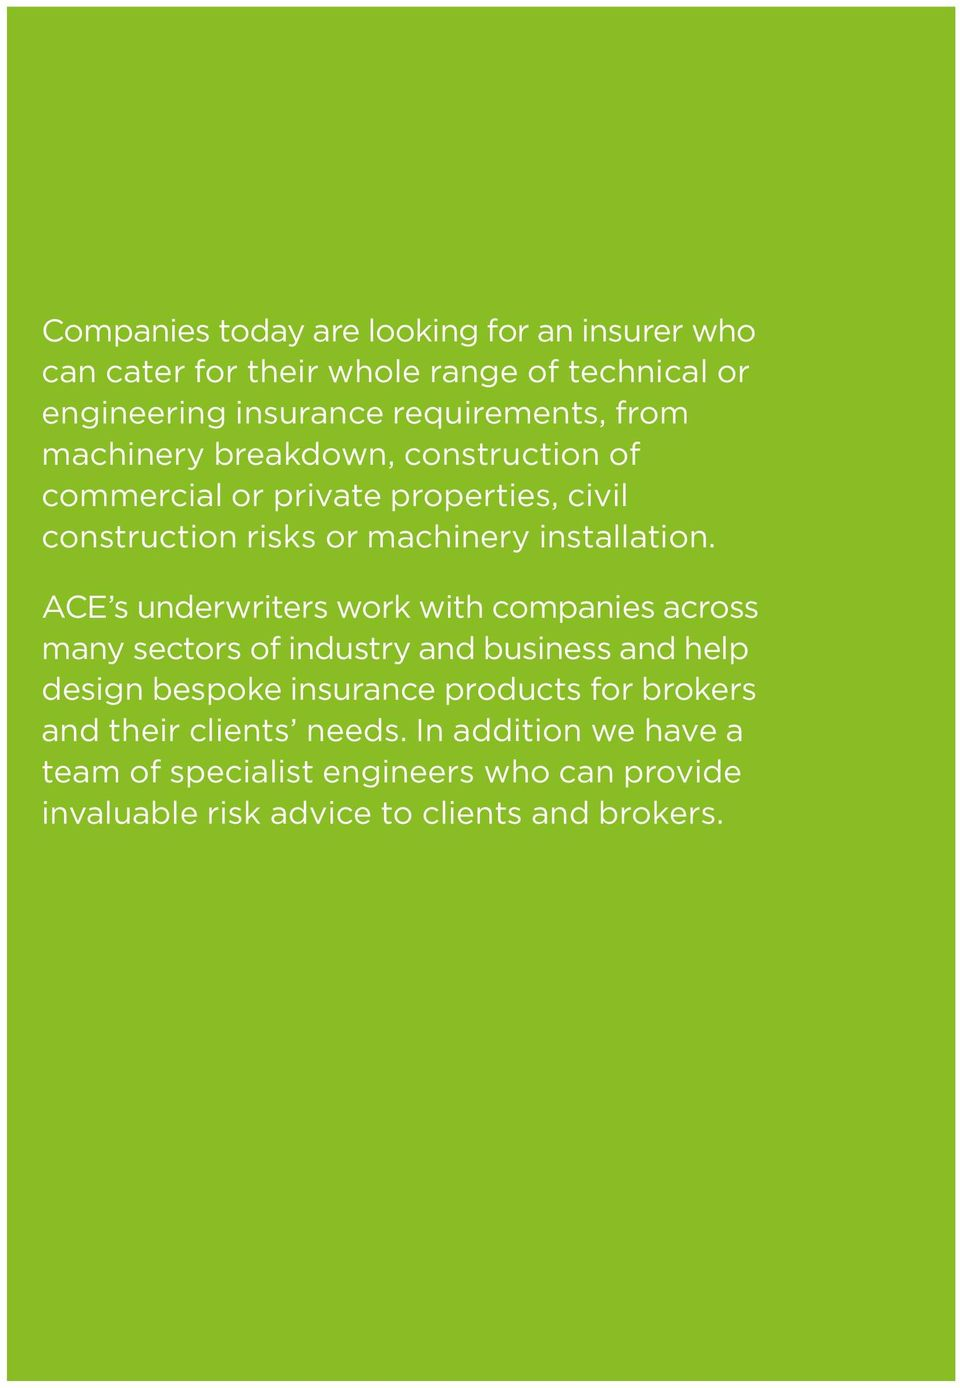 ACE s underwriters work with companies across many sectors of industry and business and help design bespoke insurance products for